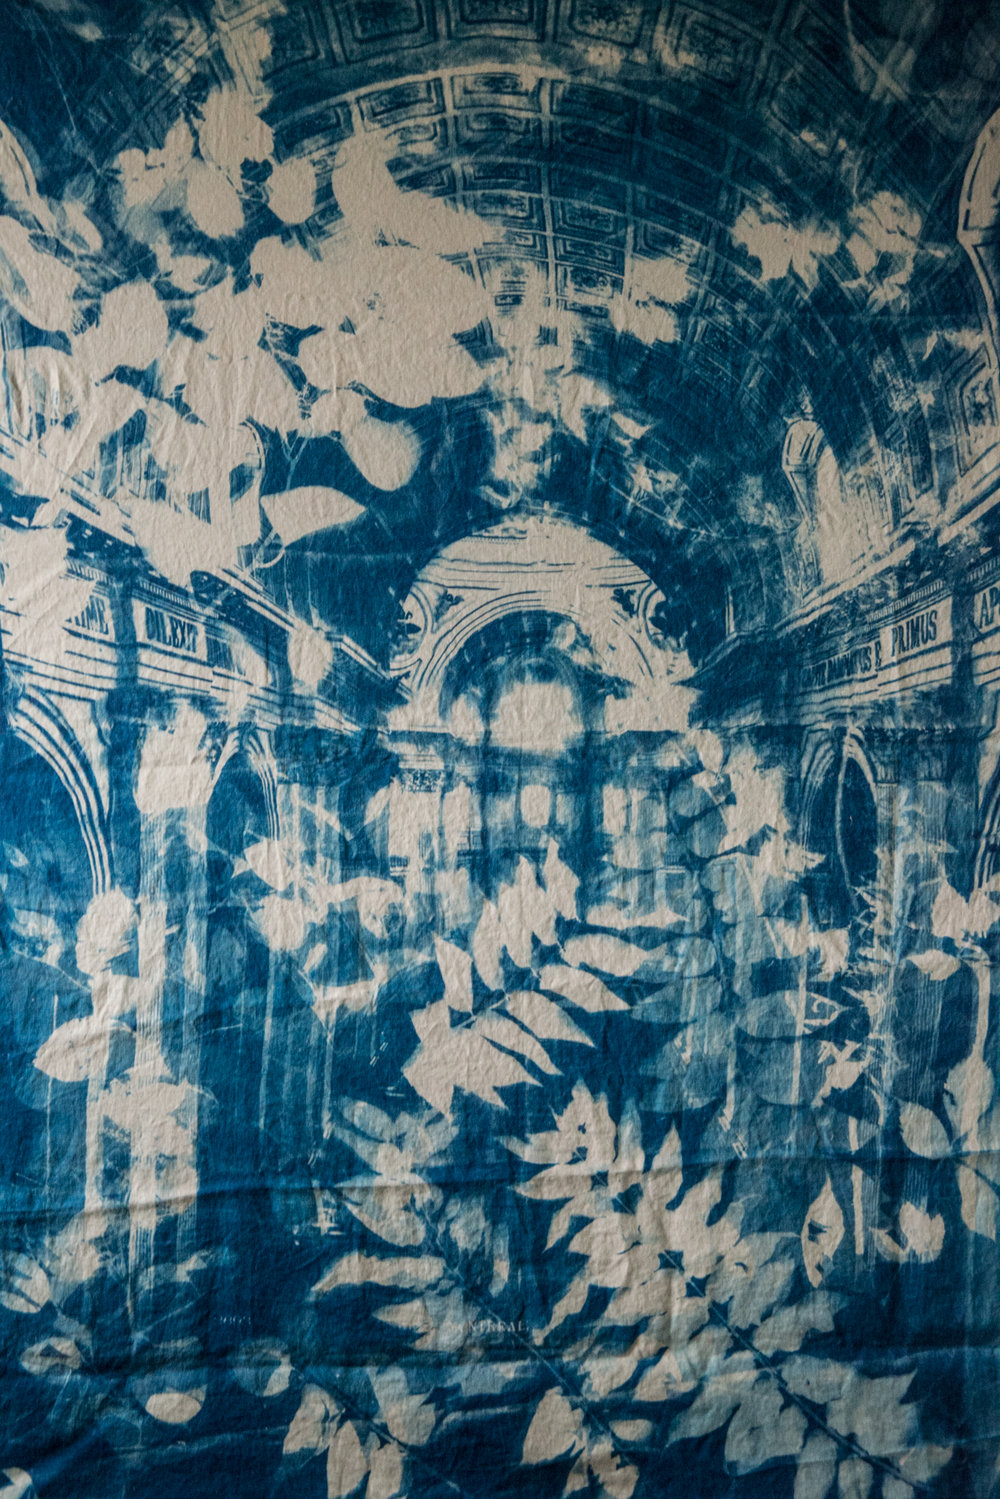 Marie Craig,  Dilexit 3,  cyanotype on linen, 56x77